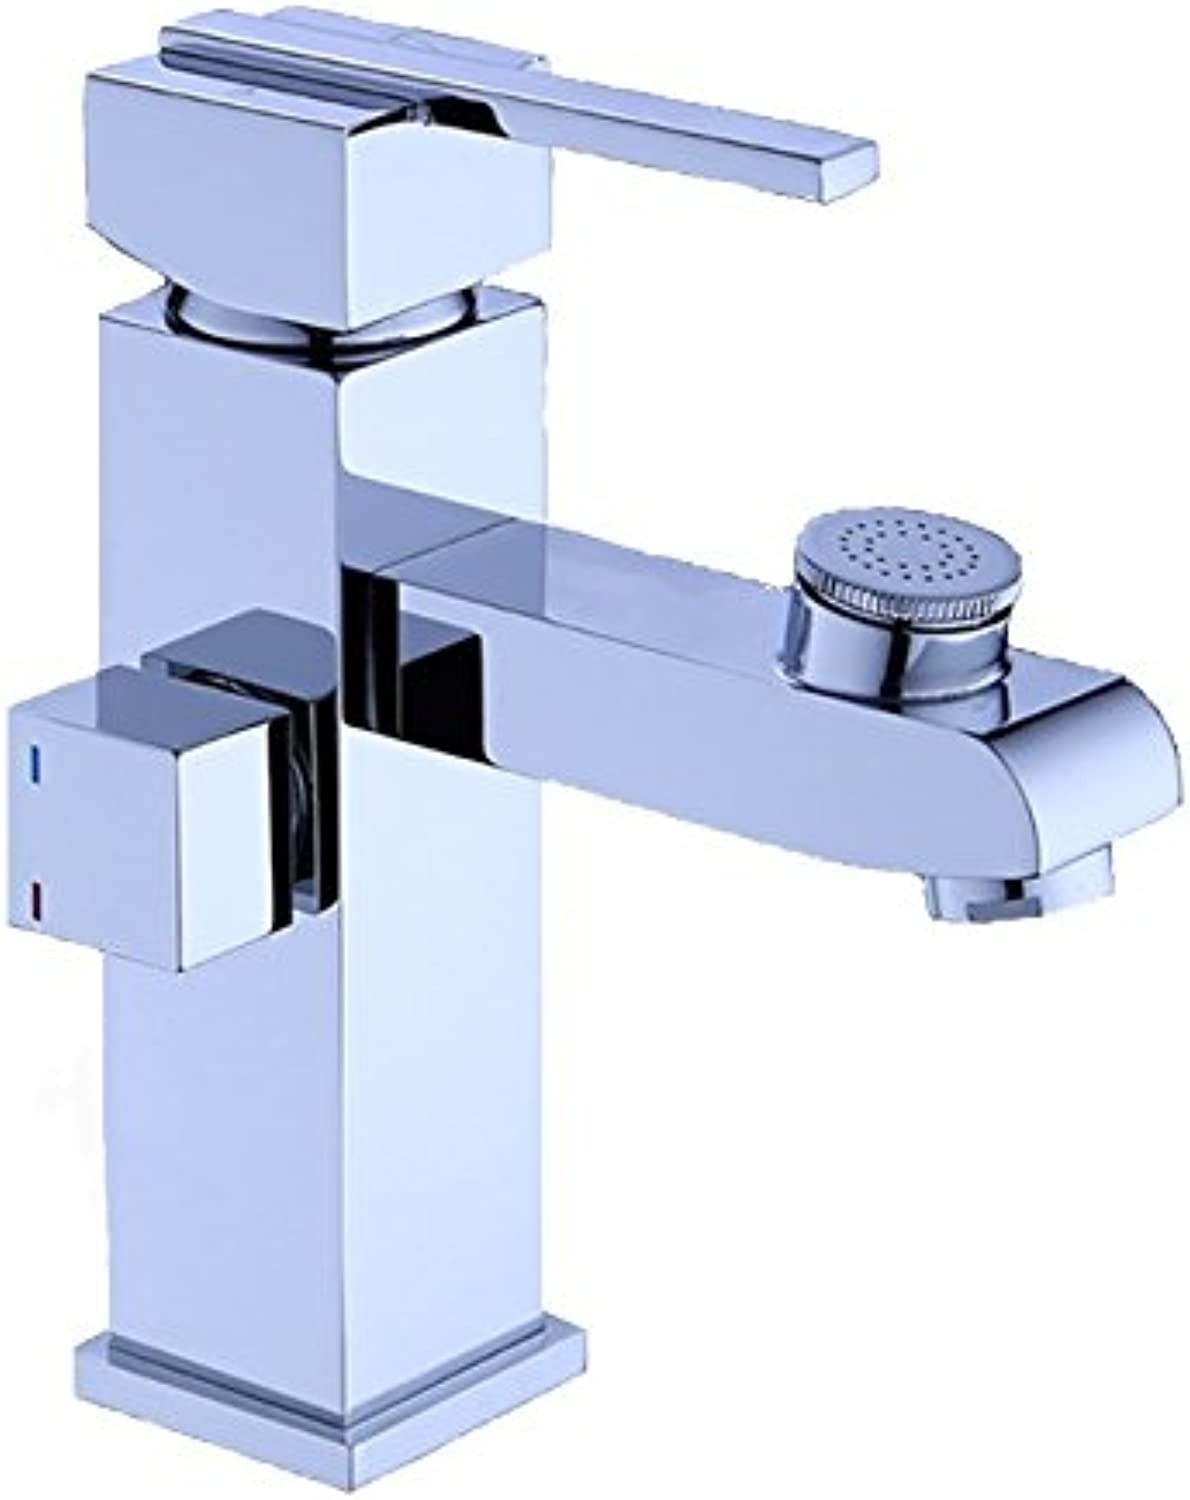 Multi-Function Faucet Hot And Cold Water Faucet Copper Bathroom Vanity Faucet Washing Faucet Bathroom Counter Basin